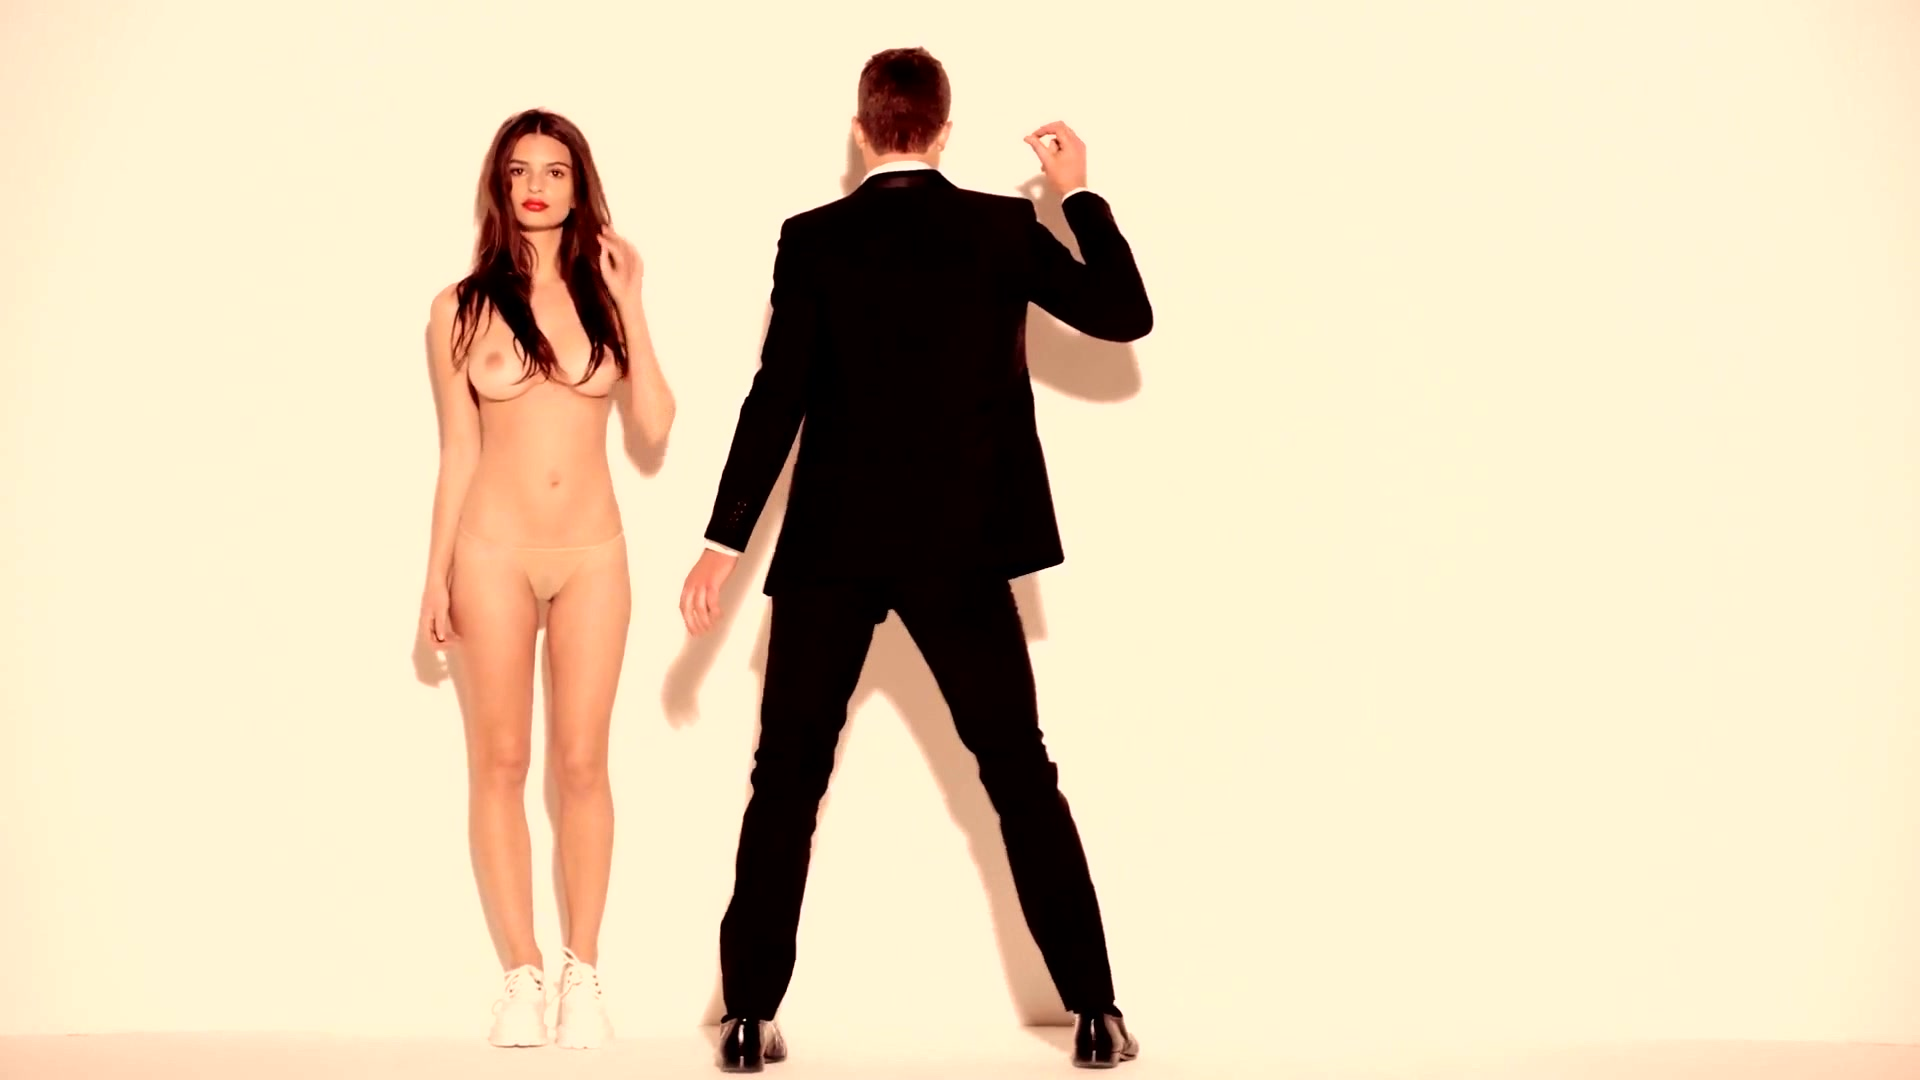 Emily Ratajkowski - Blurred Lines Uncensored With Nude -1732